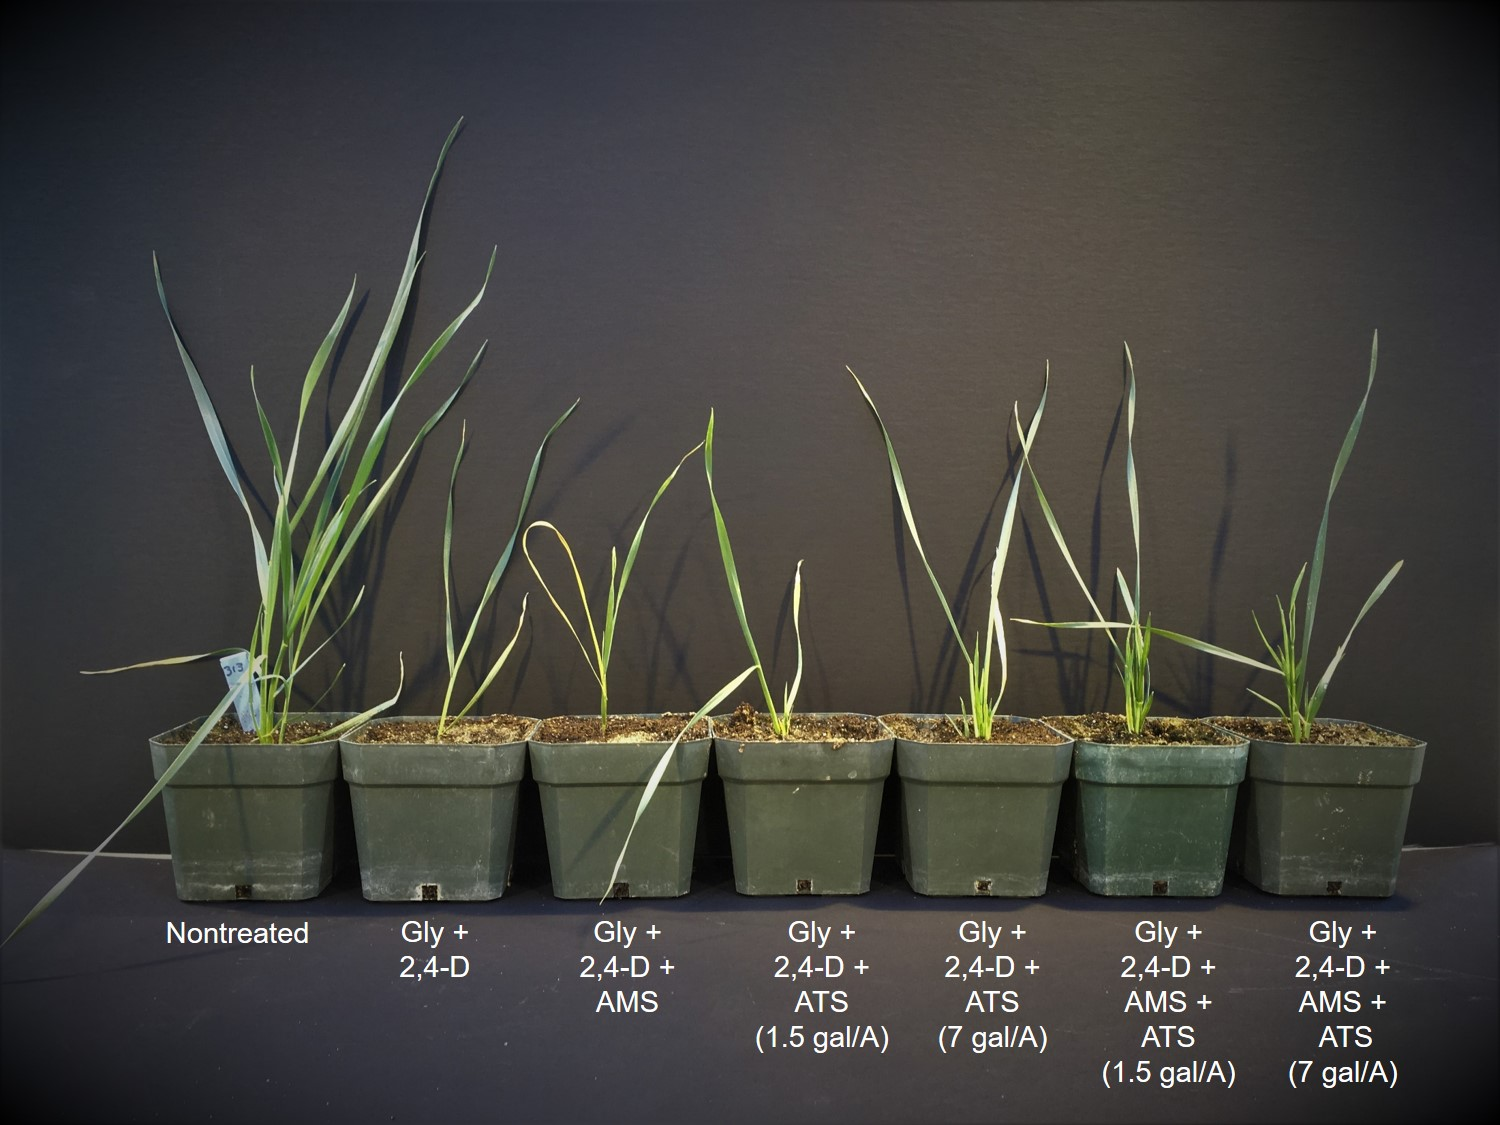 Figure 2. Effect of ammonium thiosulfate (ATS) on glyphosate activity on wheat 11 days after treatment.